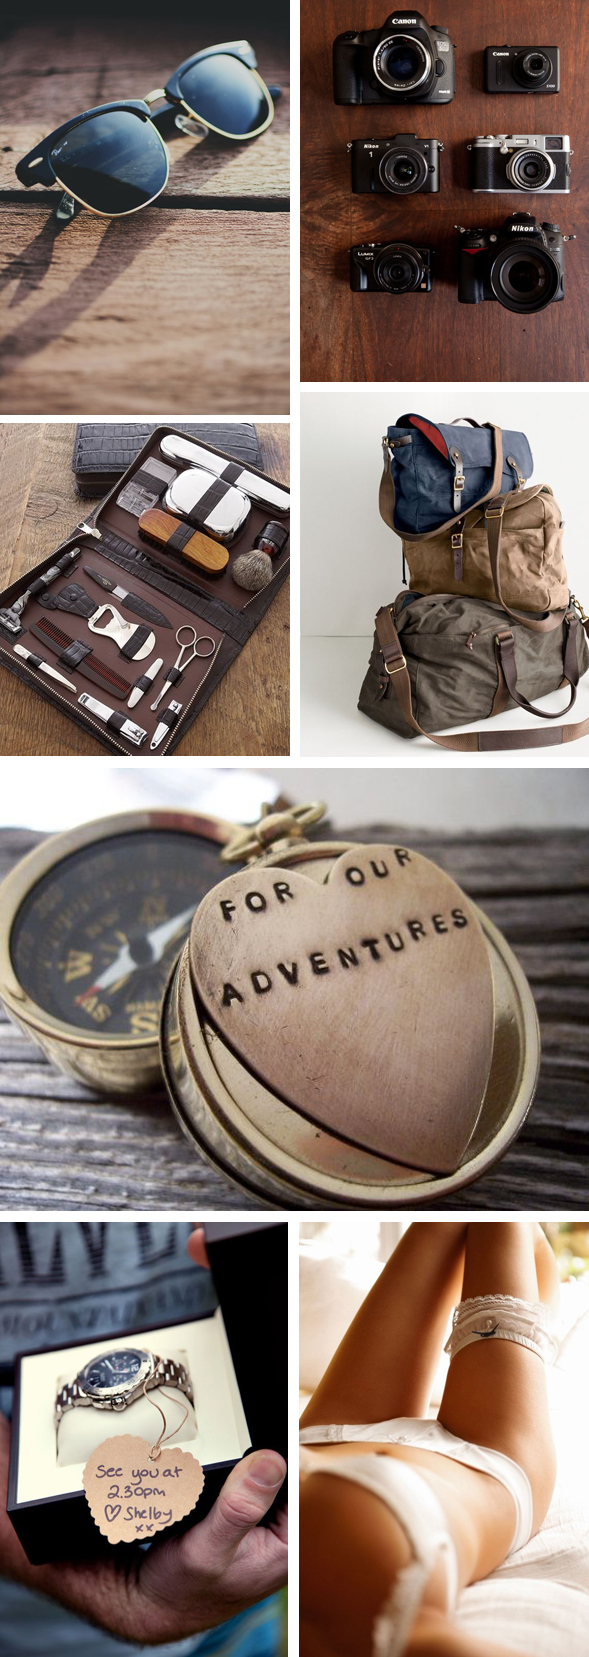 Travel Inspired Gifts for Your Groom